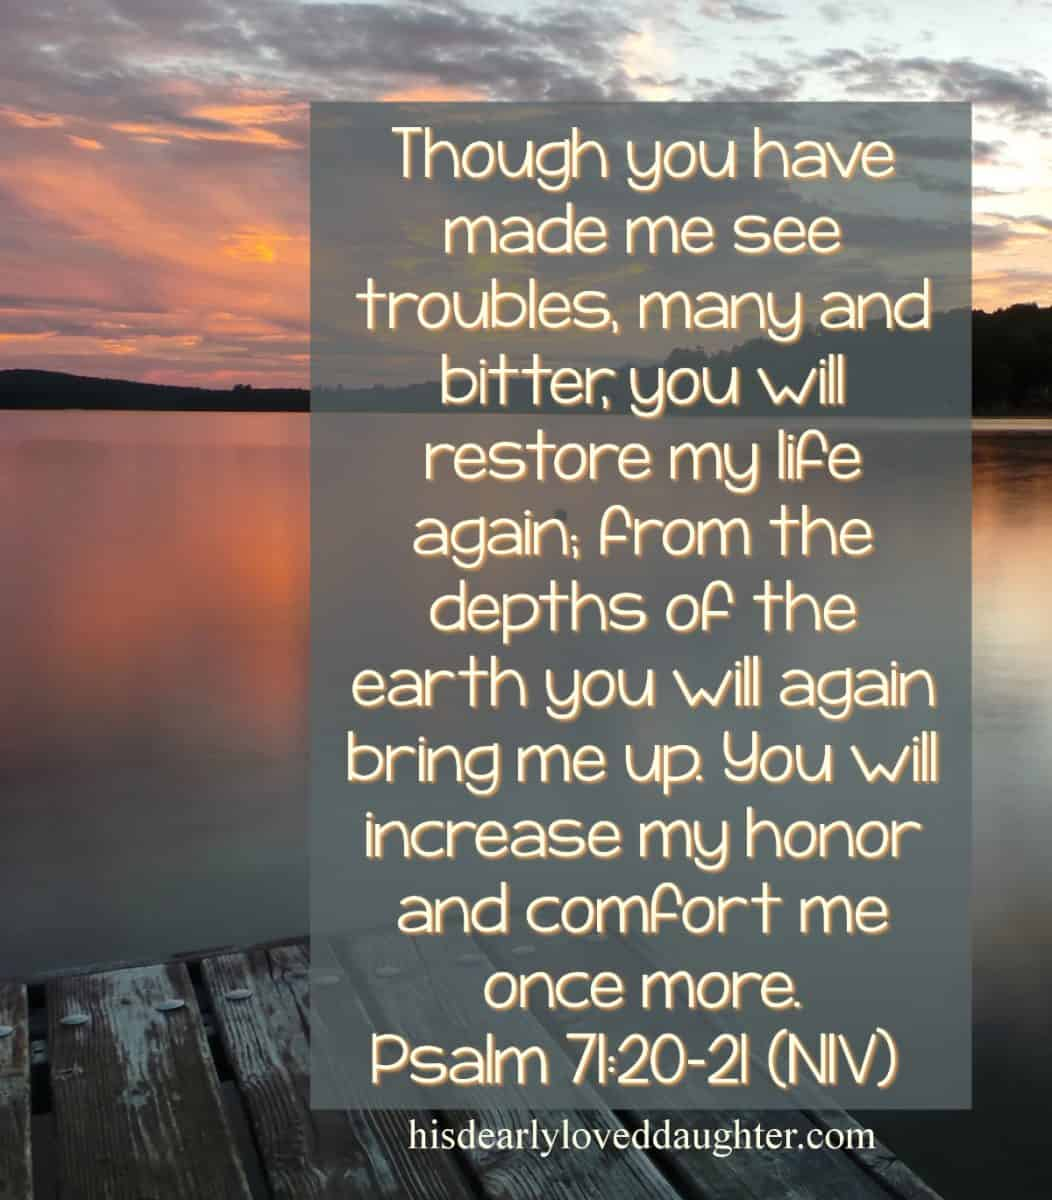 Though You have made me see troubles, many and bitter, You will restore my life again. From the depths of the earth you will again bring me up. You will increase my honor and comfort me once more. Psalm 71:20-21